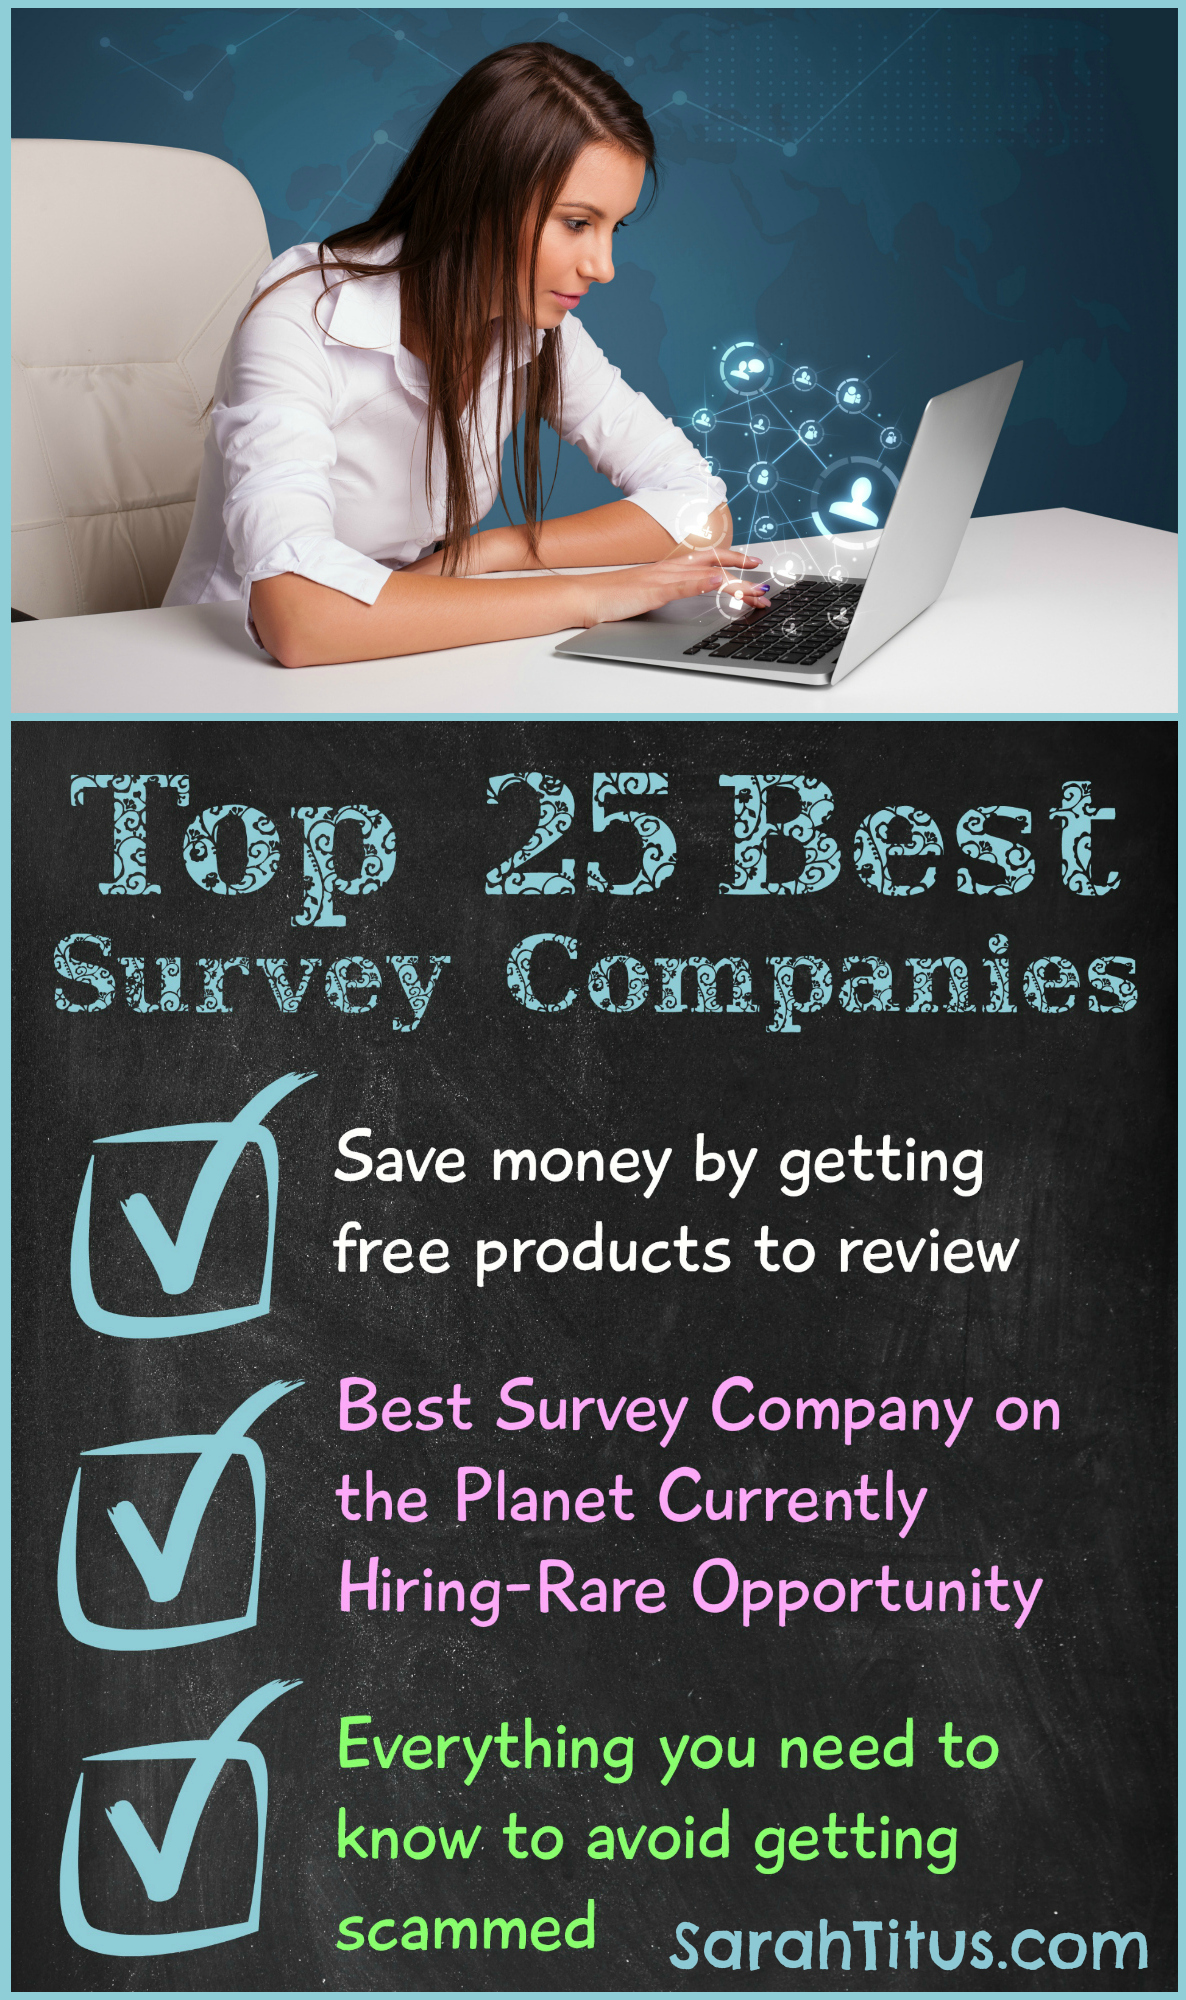 Best 25 Teen Girl Costumes Ideas On Pinterest: Top 25 Best Survey Companies